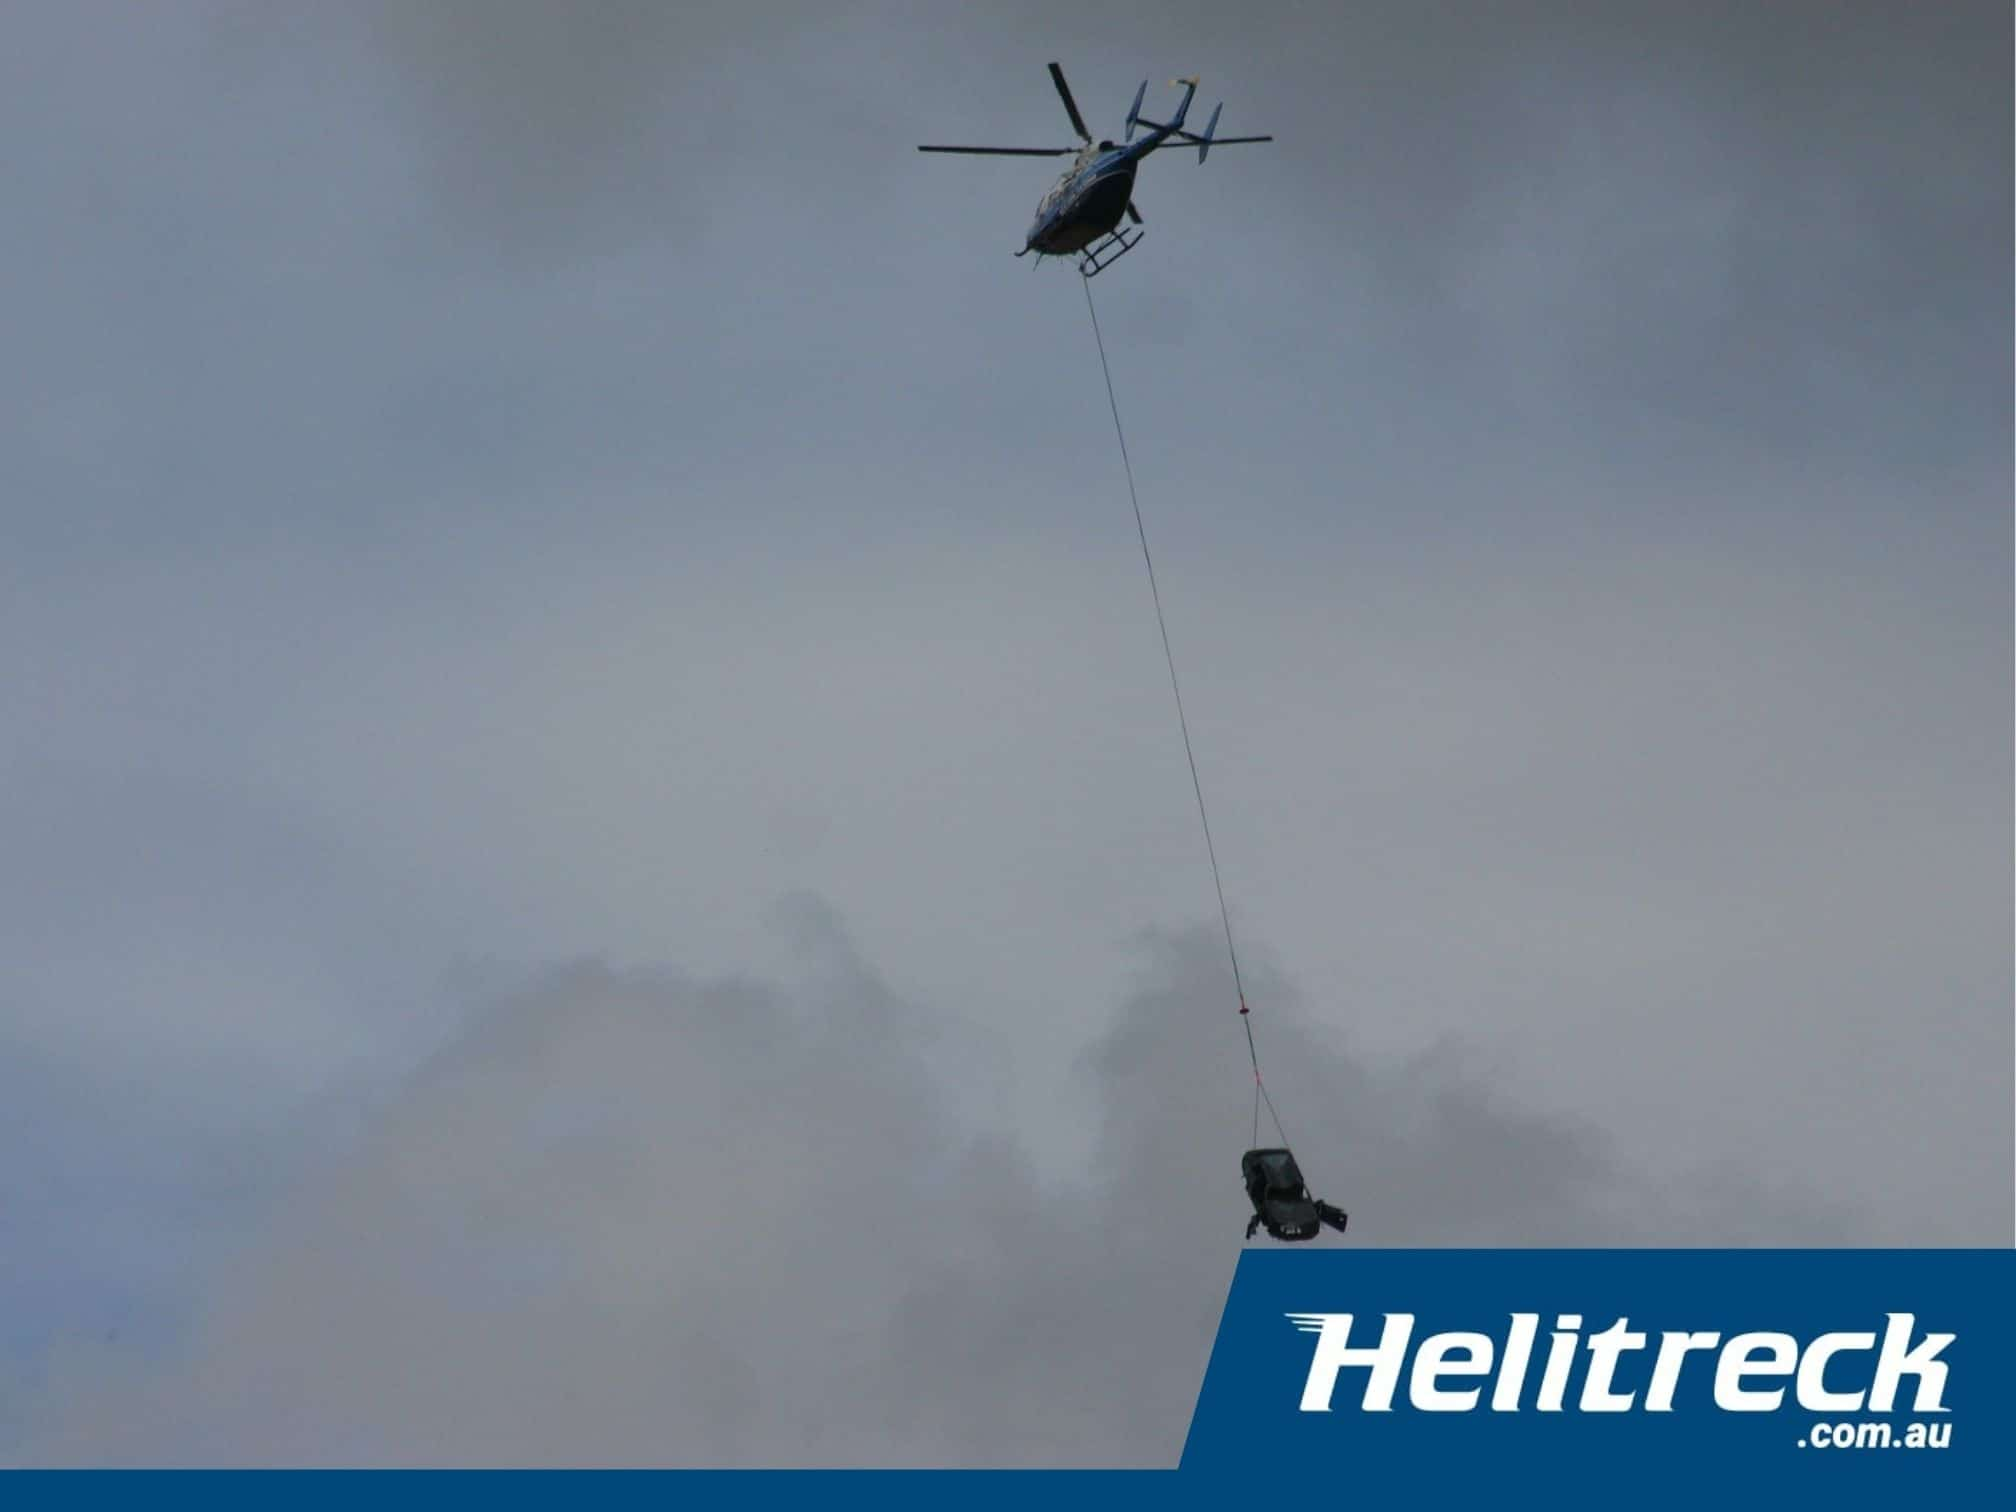 Helicopter Longlines Helitreck4